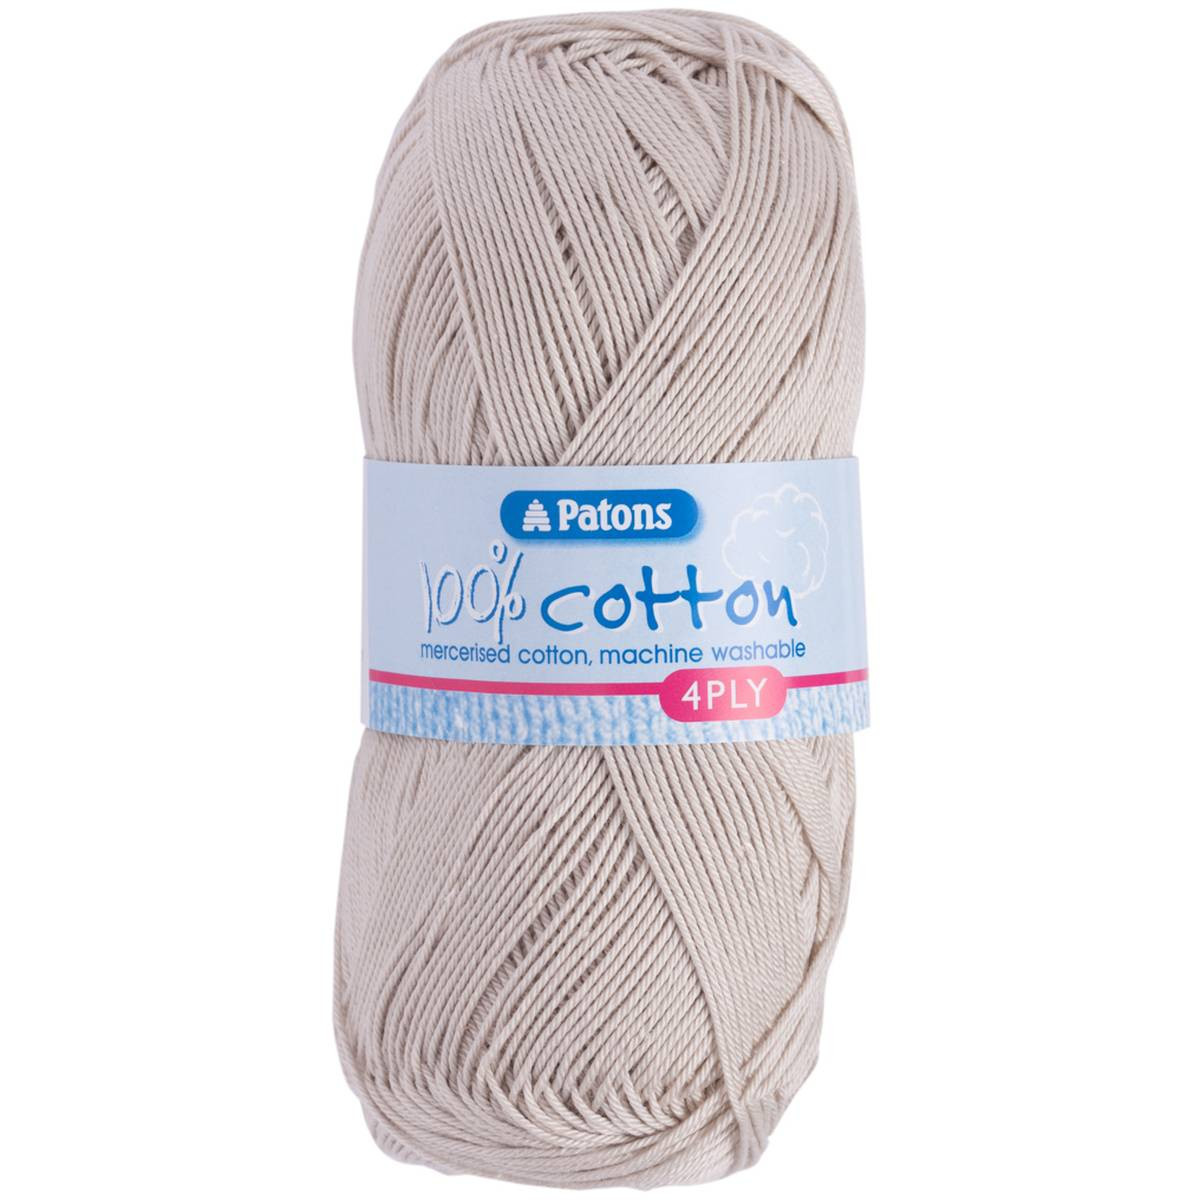 4 Ply Cotton Yarn Lovely Patons 4 Ply 100 Percent Cotton Yarn In Limestone Of Lovely 43 Photos 4 Ply Cotton Yarn